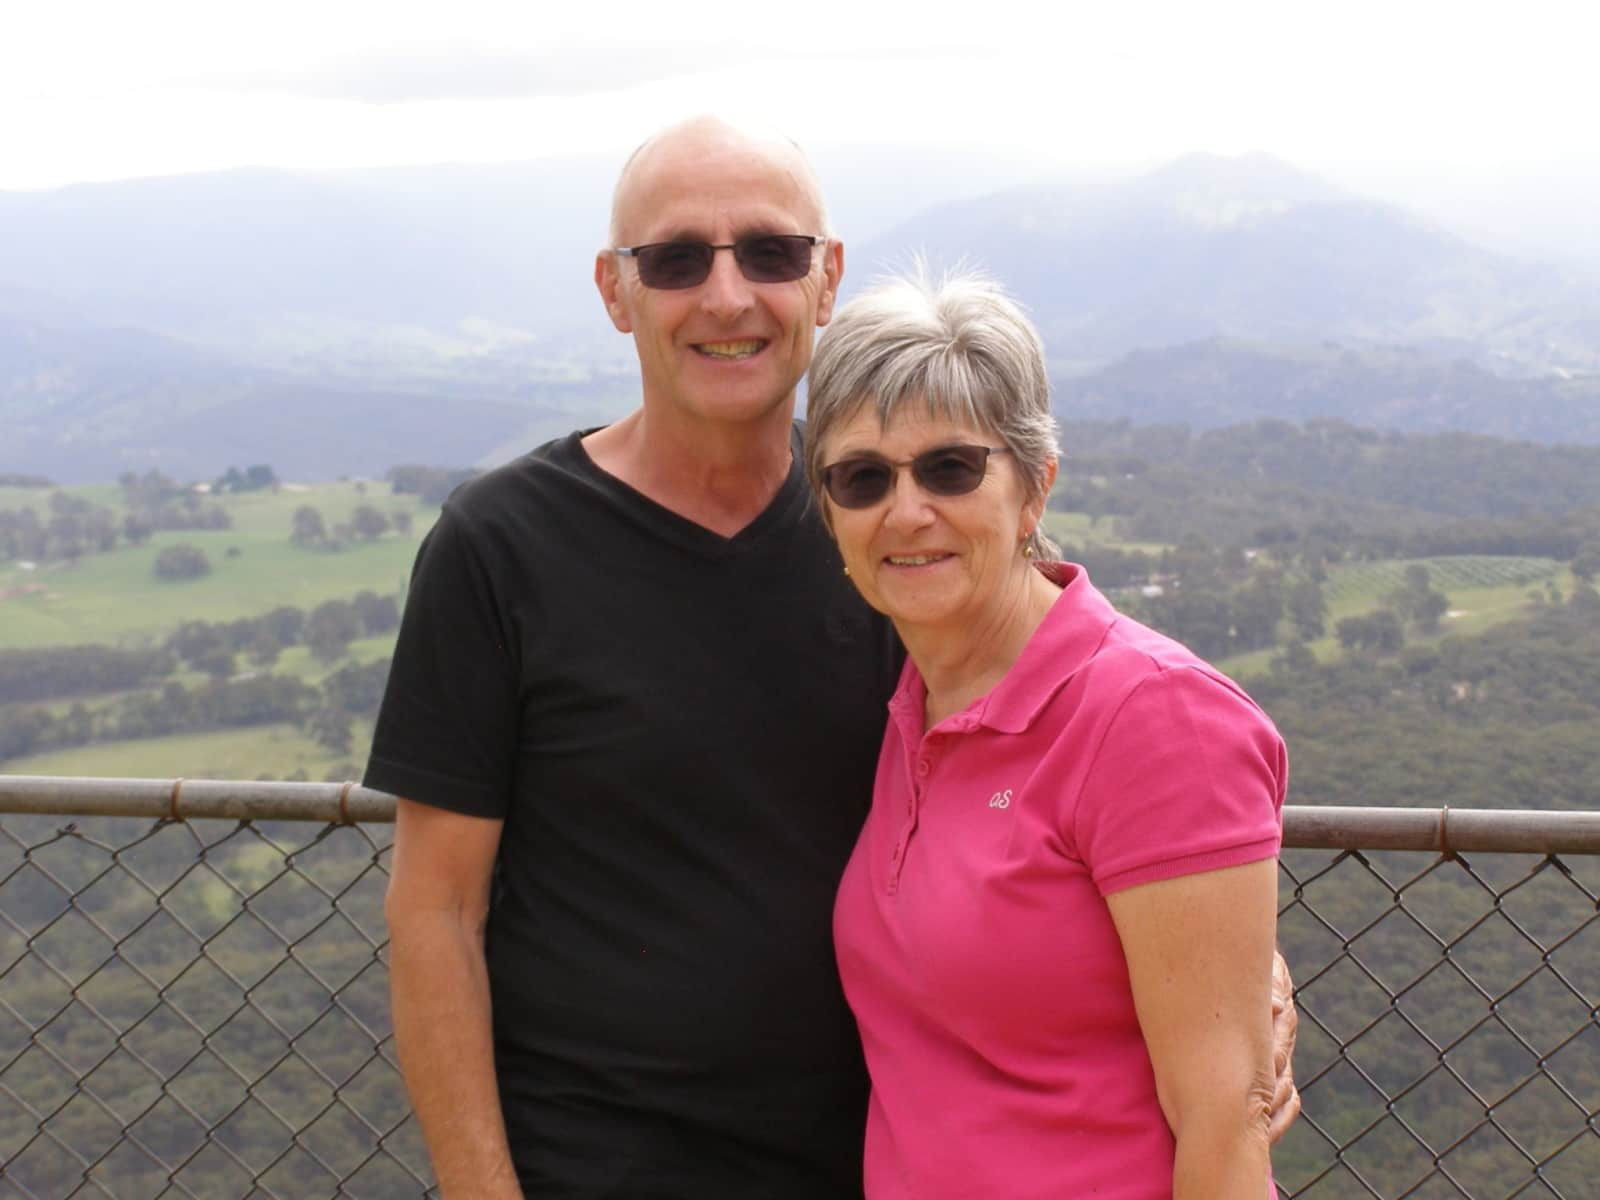 Helen & Clive from Bateau Bay, New South Wales, Australia